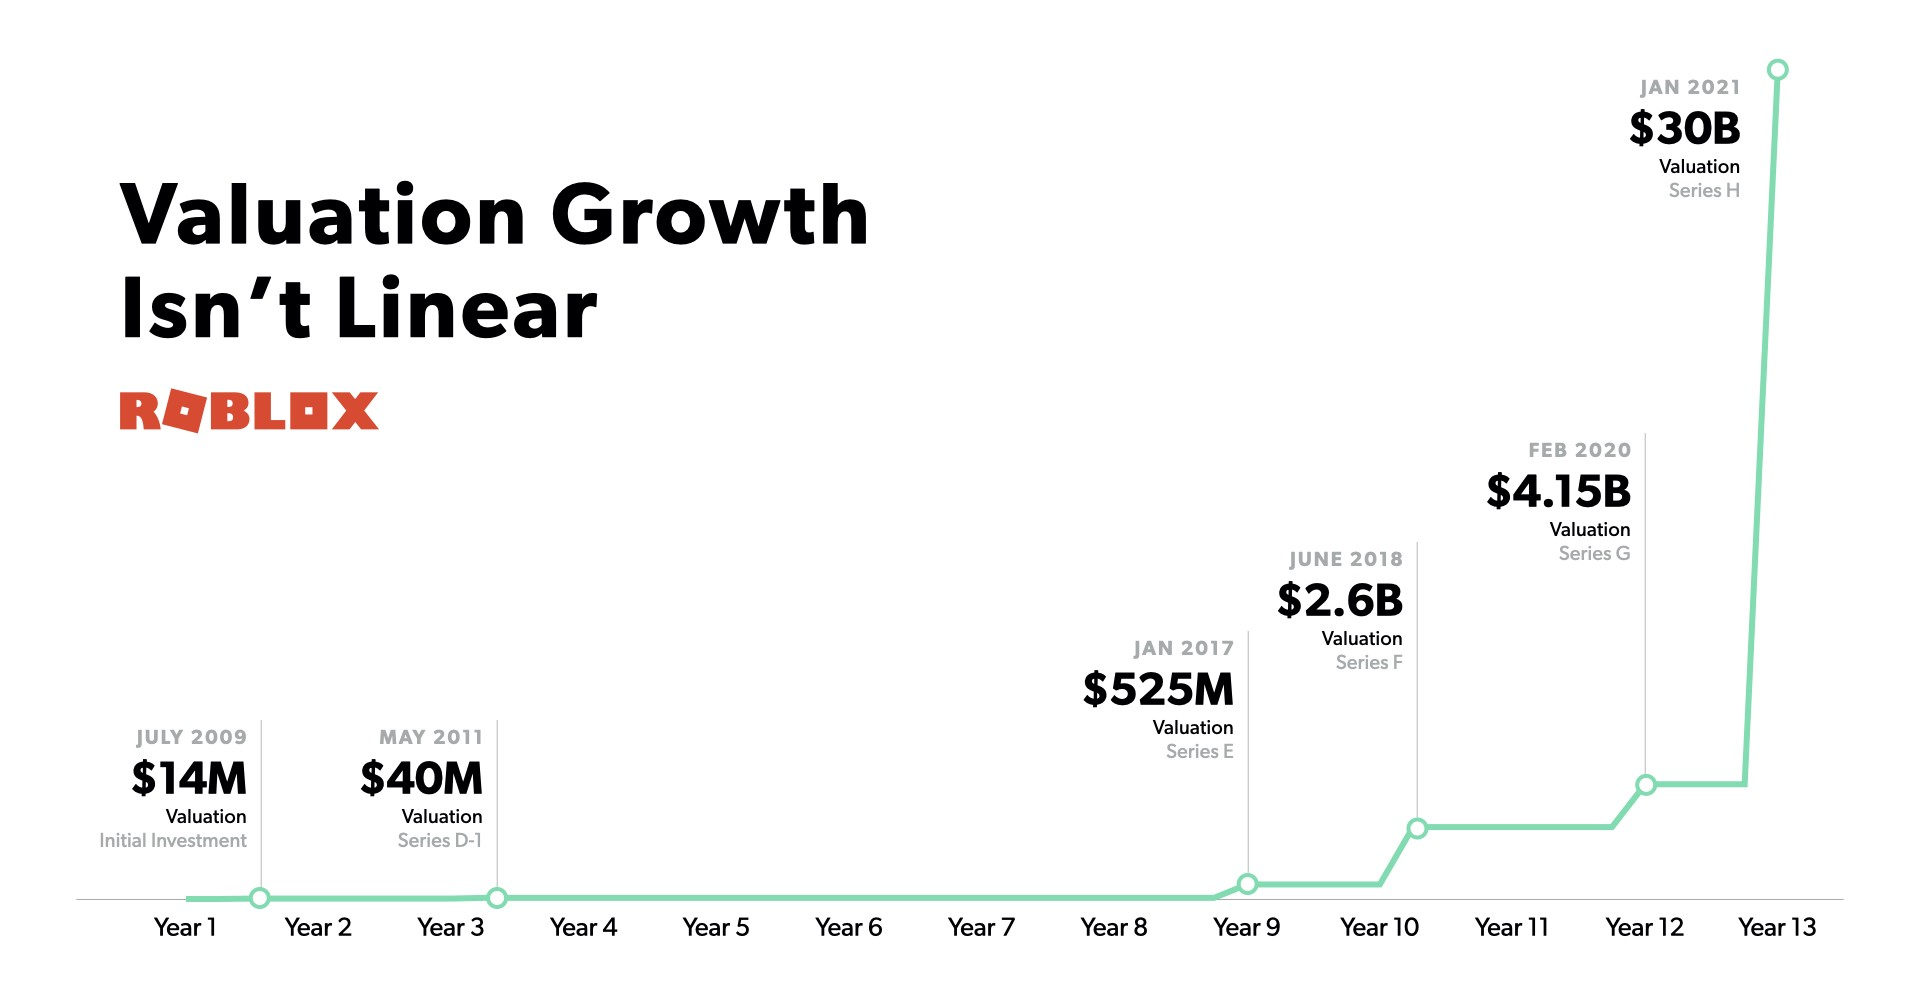 Chart showing Roblox's valuation growth that says: Valuation growth isn't linear